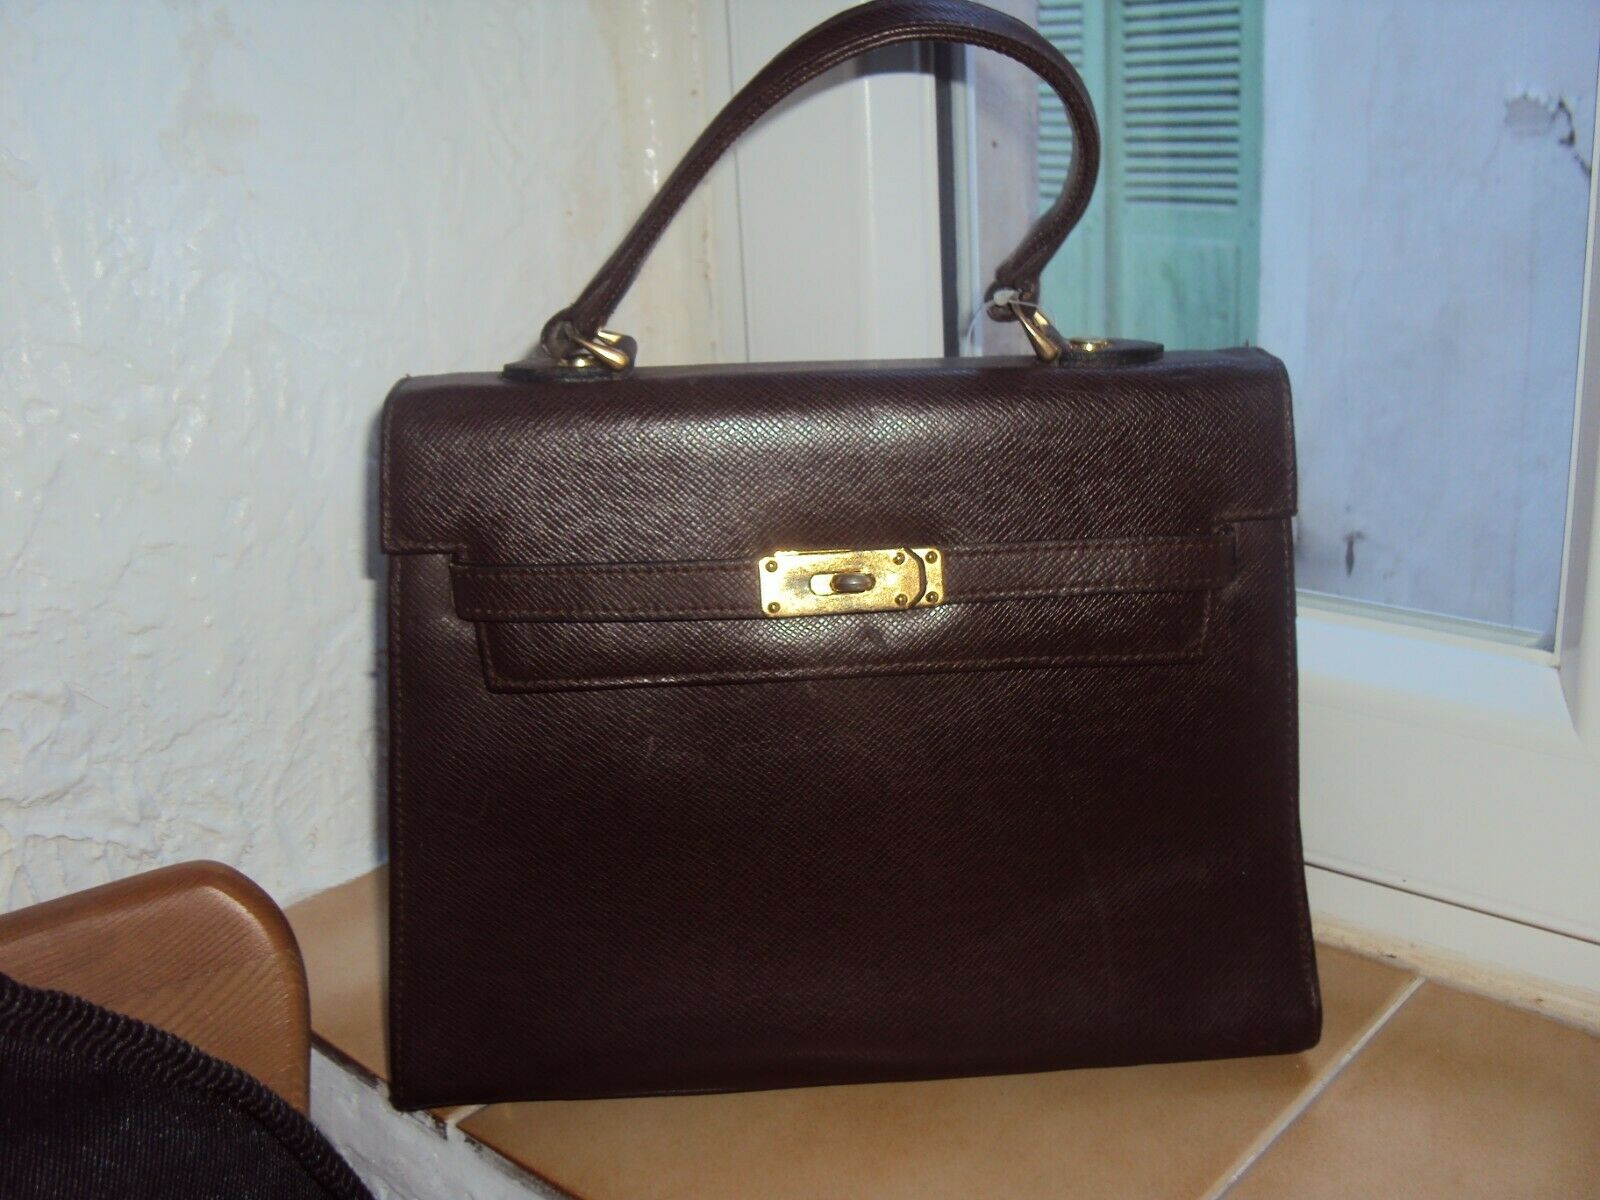 Sac à main en cuir type birkin/kelly, marron